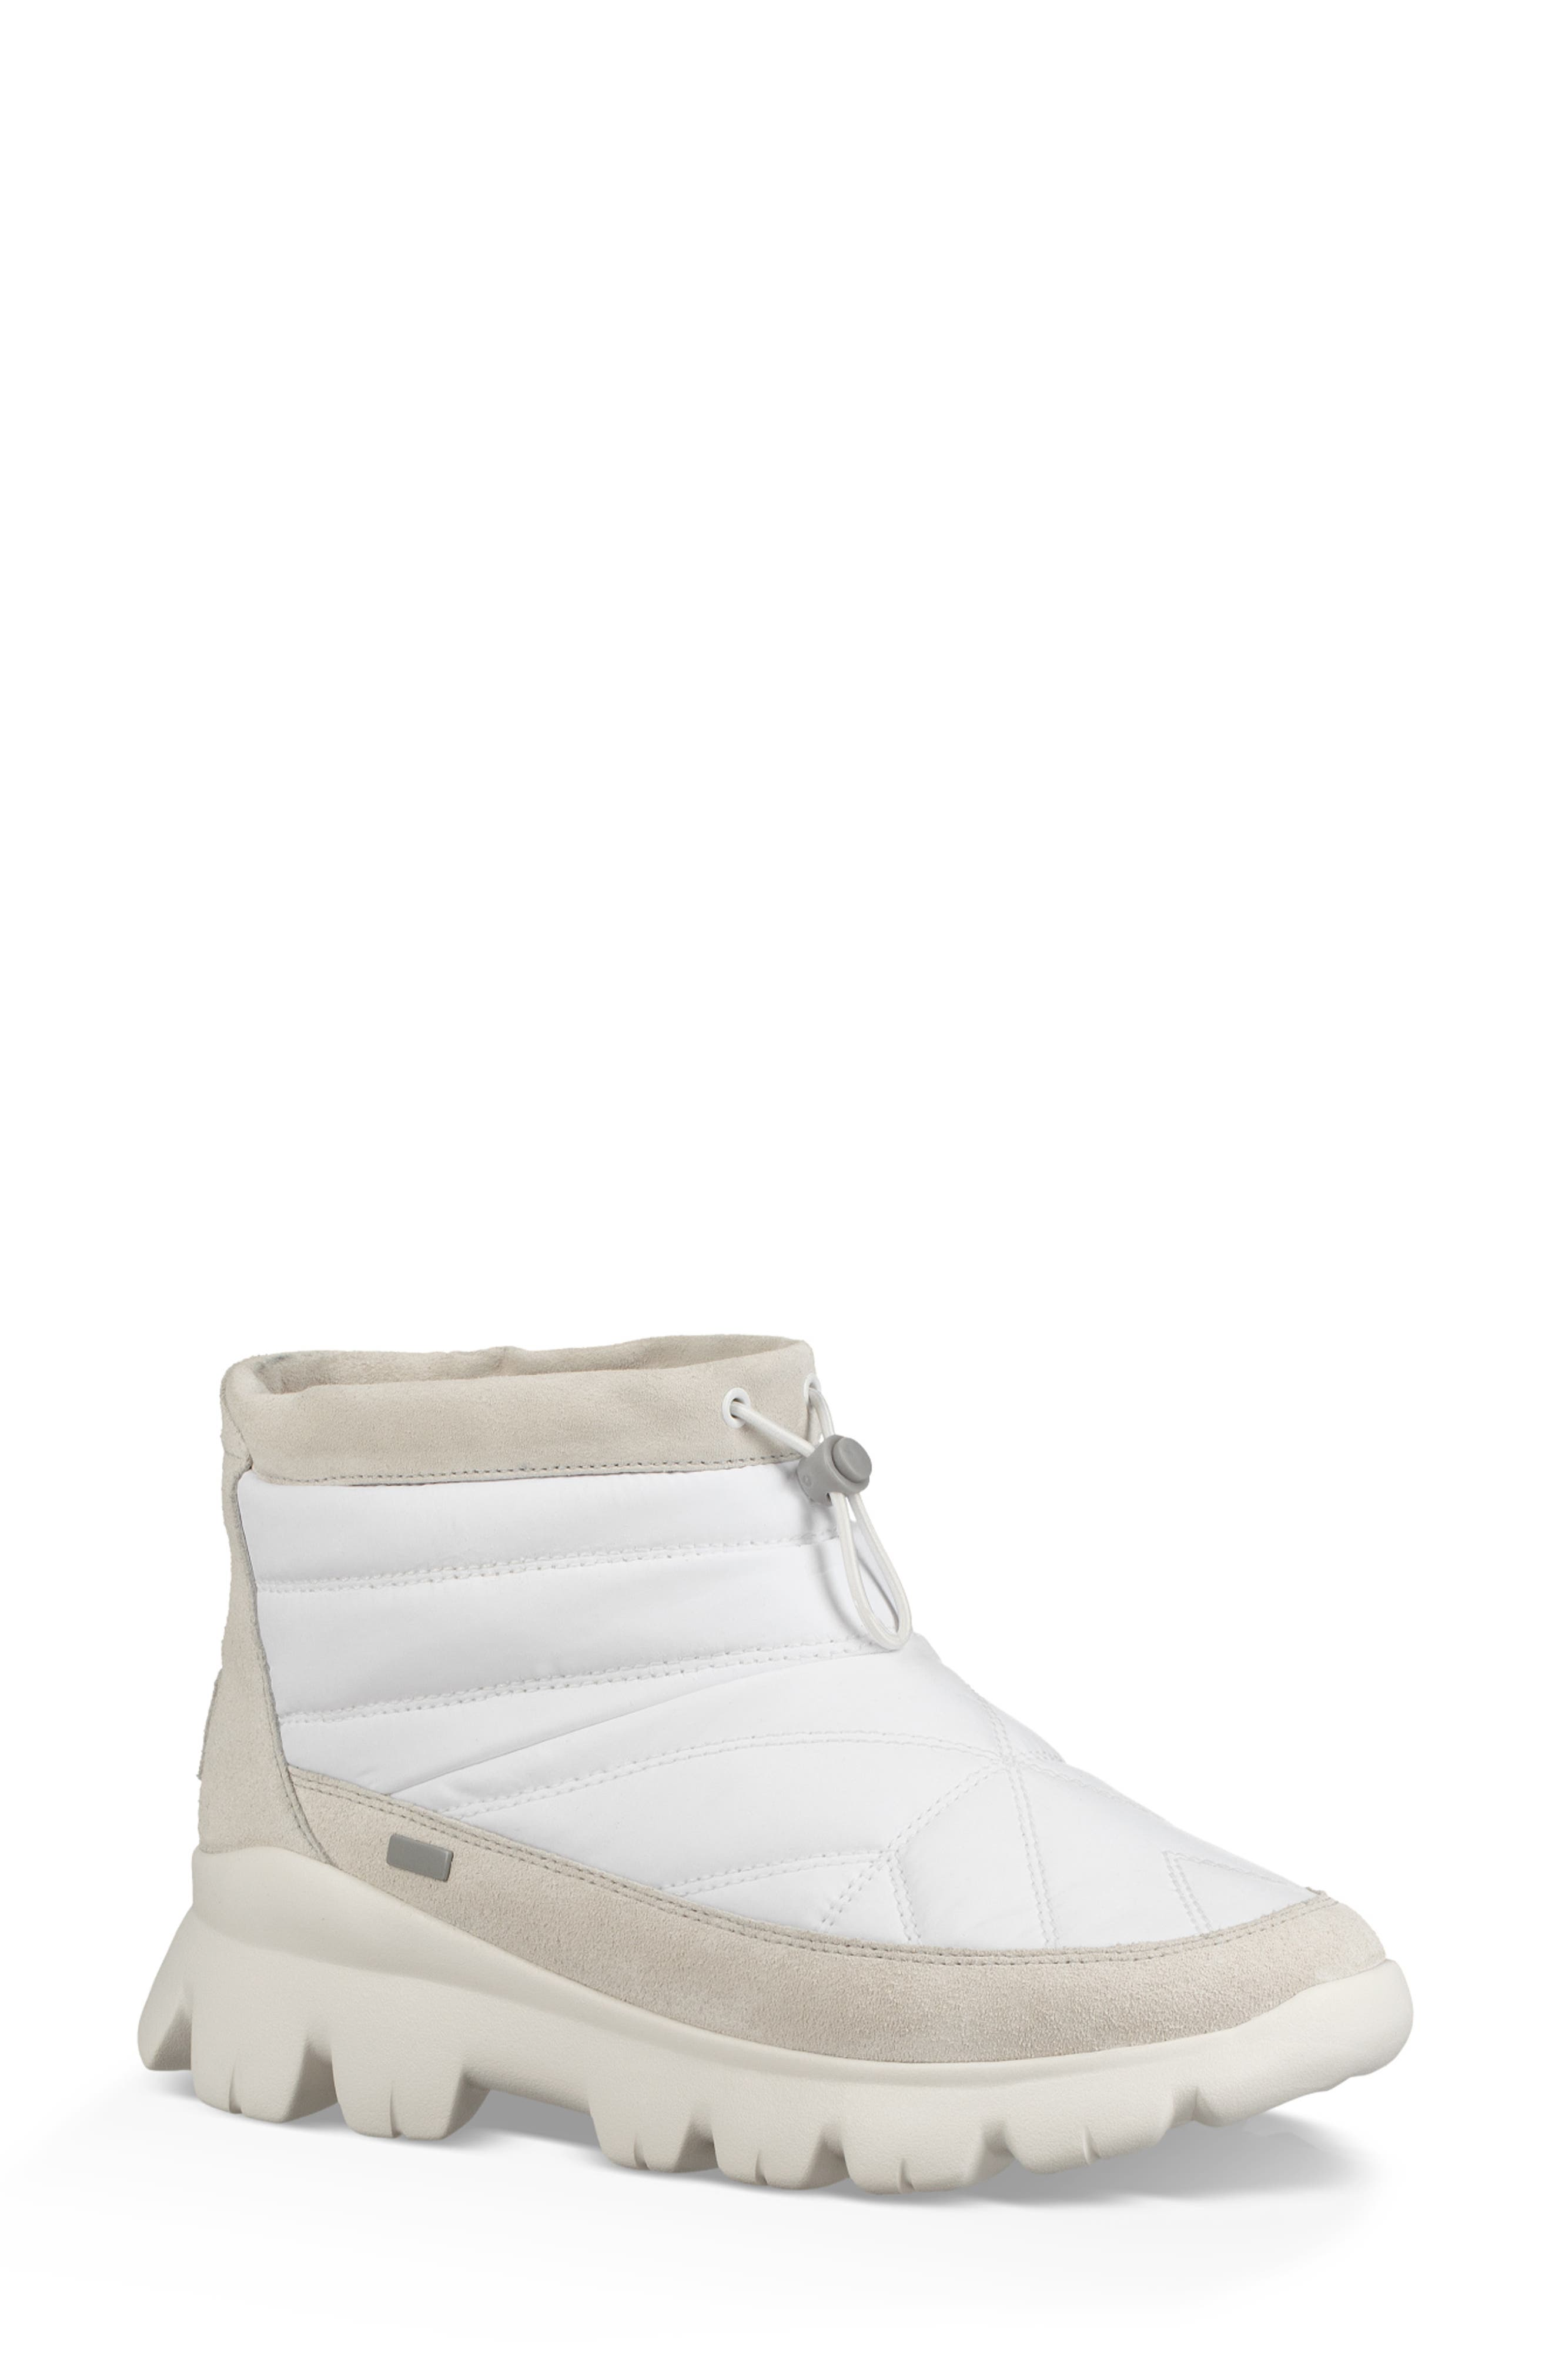 Ugg Centara Water Resistant Quilted Bootie- White